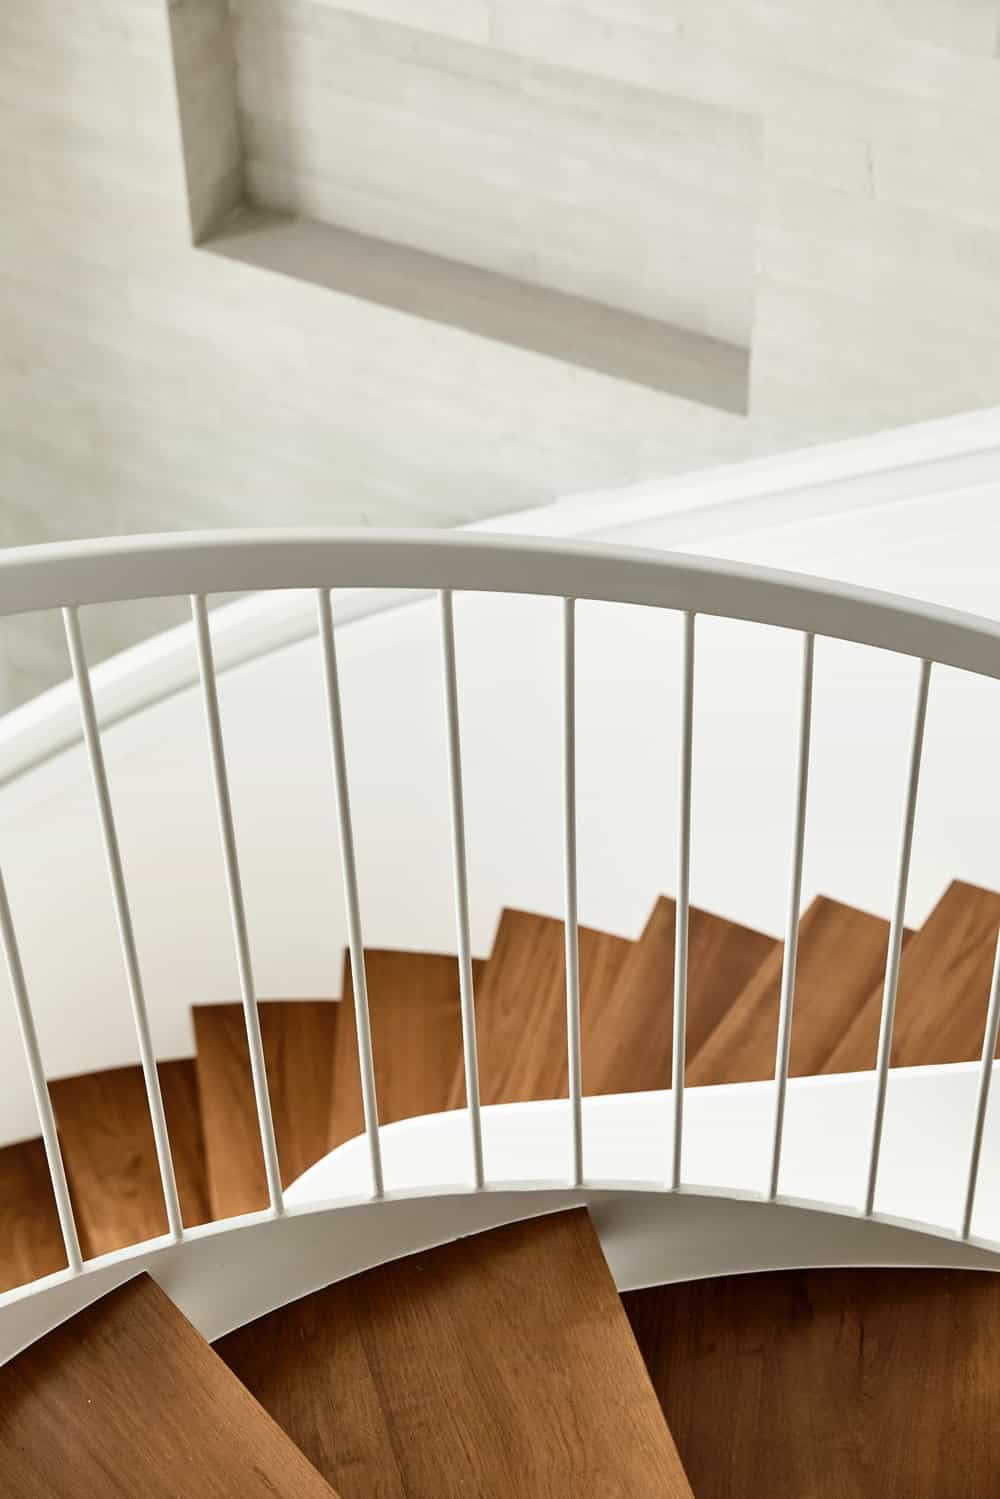 The spiral staircase above has thin white railings on its side contrasted by the wooden steps.